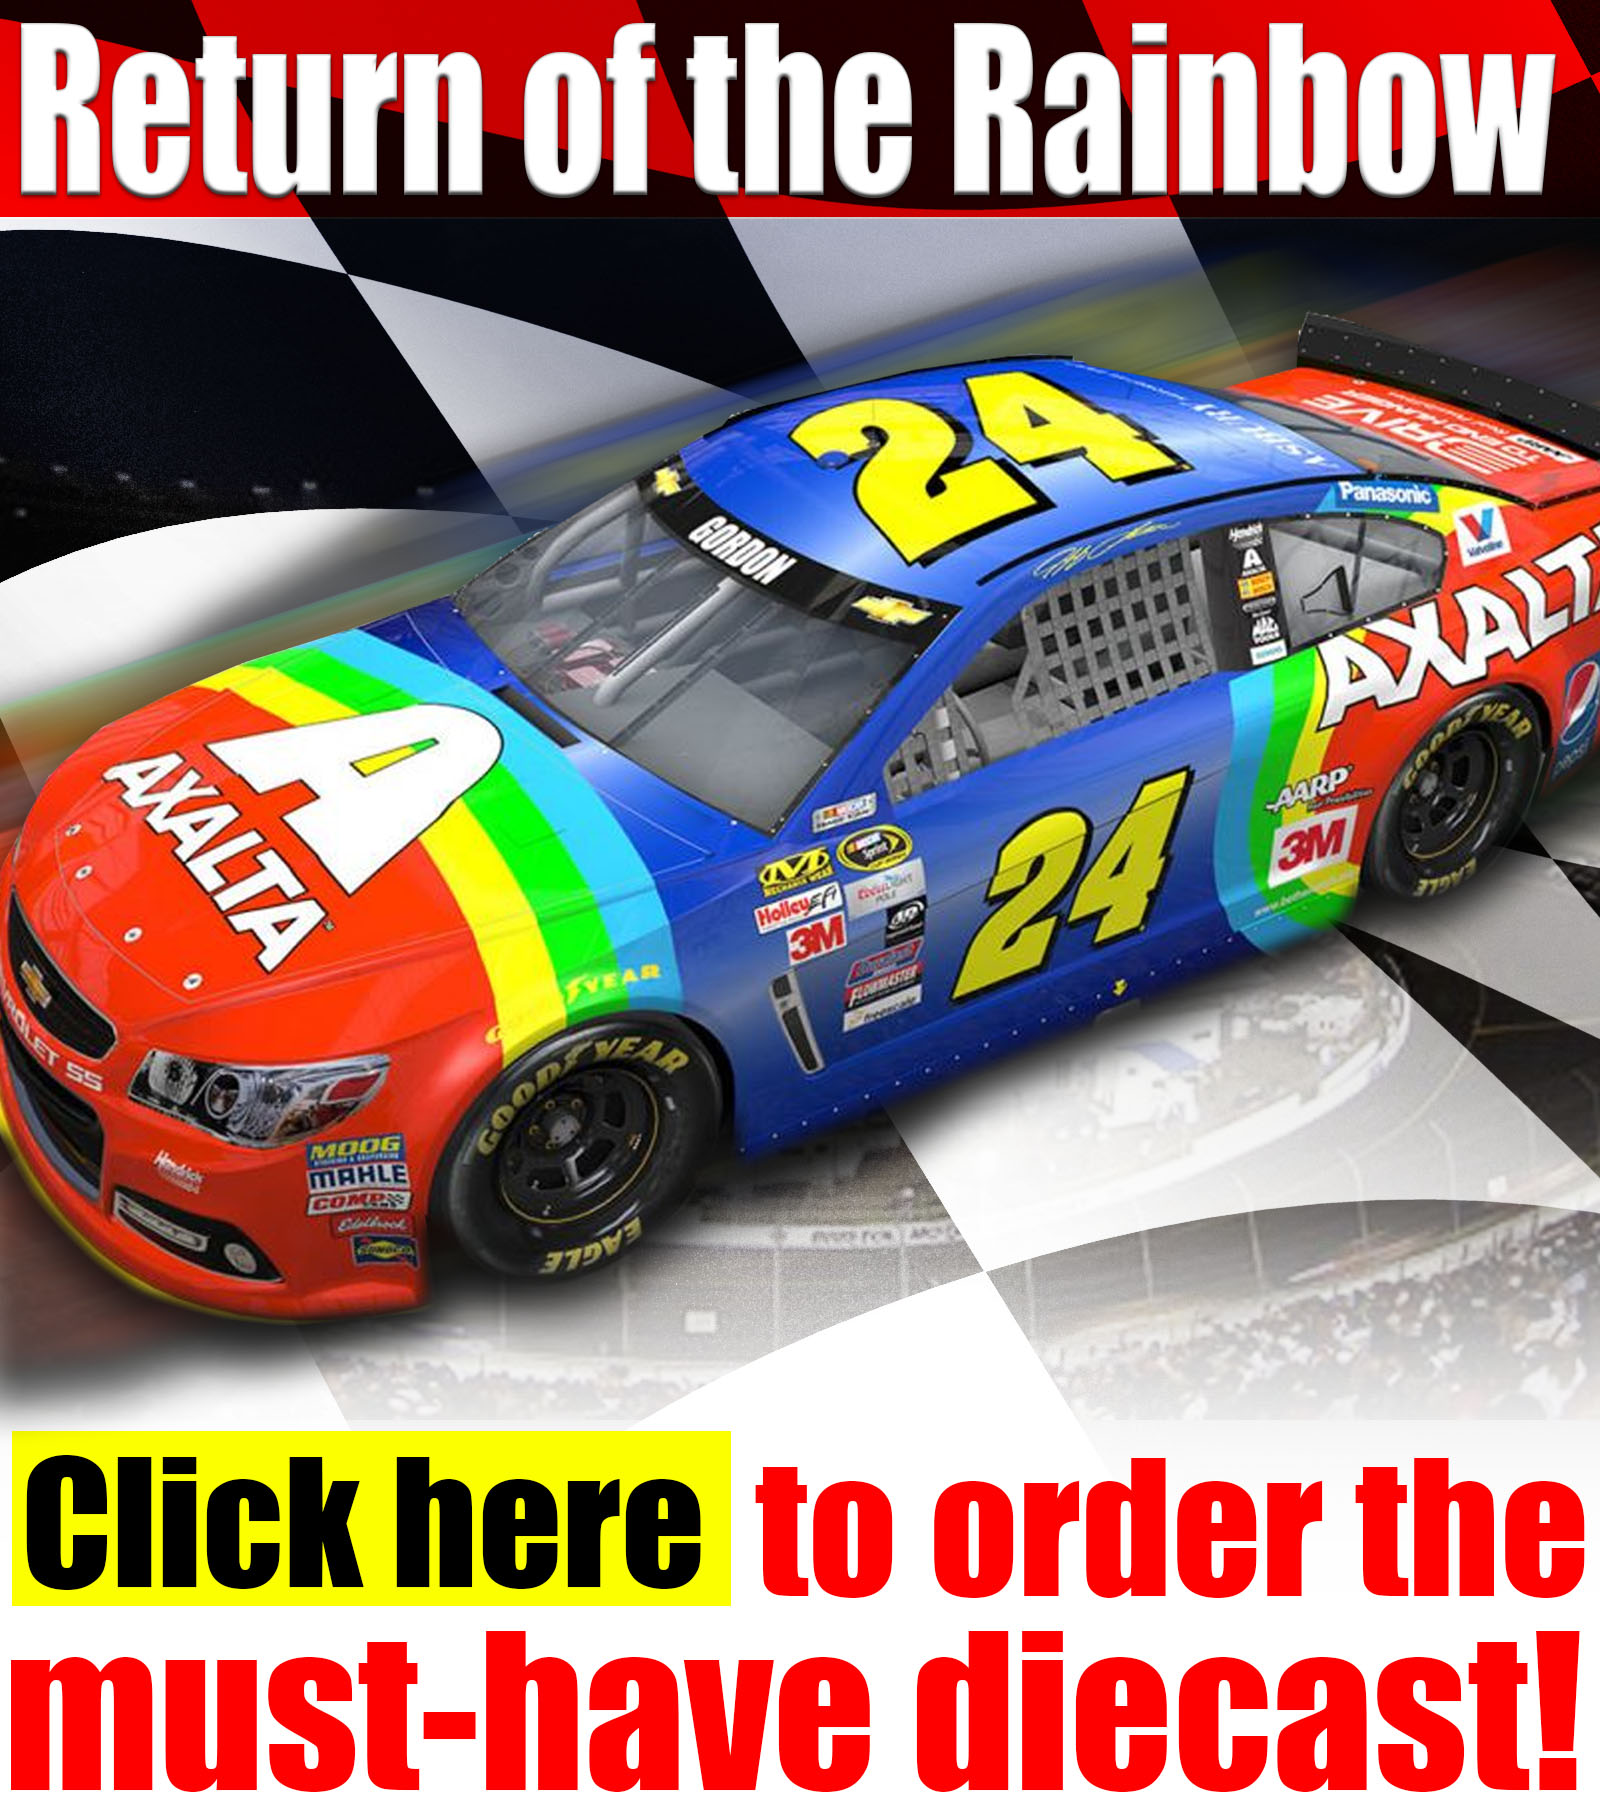 jeff gordon retro rainbow diecast